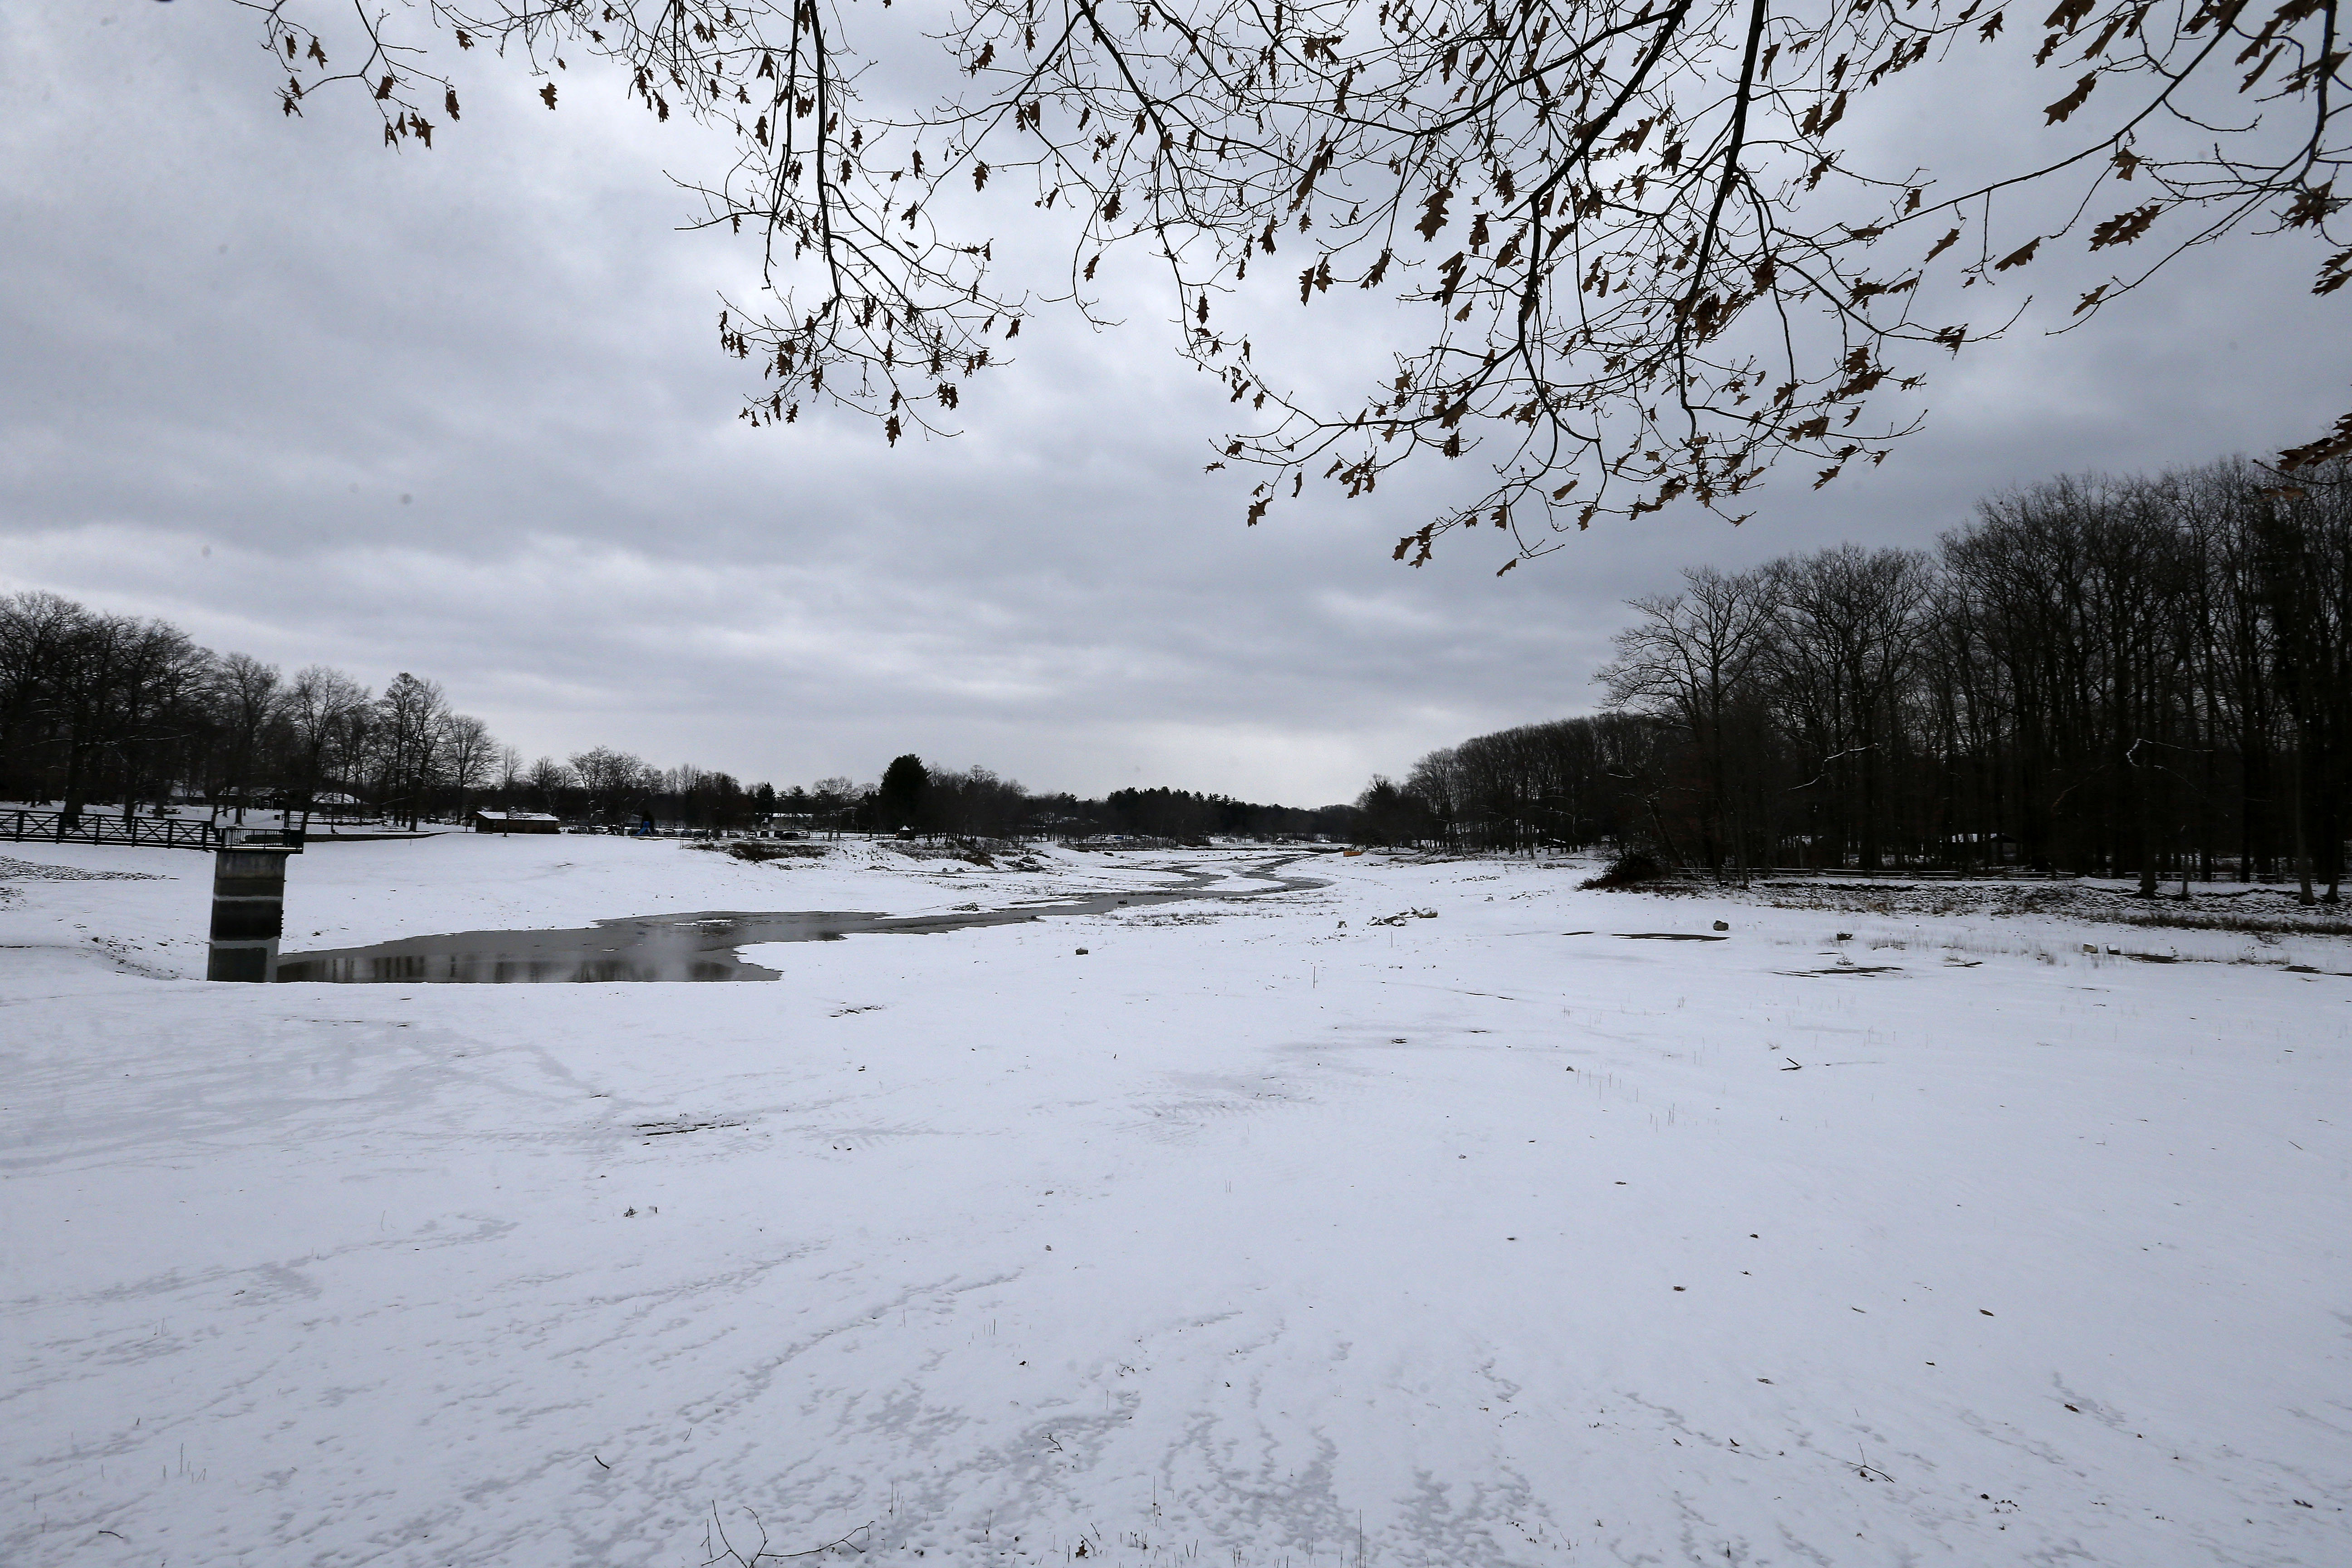 Green Lake starts to fill with water in Orchard Park on Thursday, December 8, 2016.  The lake was drained in 2015 and dredged in 2016. while a new dam was constructed. Town officials closed the lower dam gate on Dec. 8 so the lake could fill with rainwater and snow. (Mark Mulville/The Buffalo News)